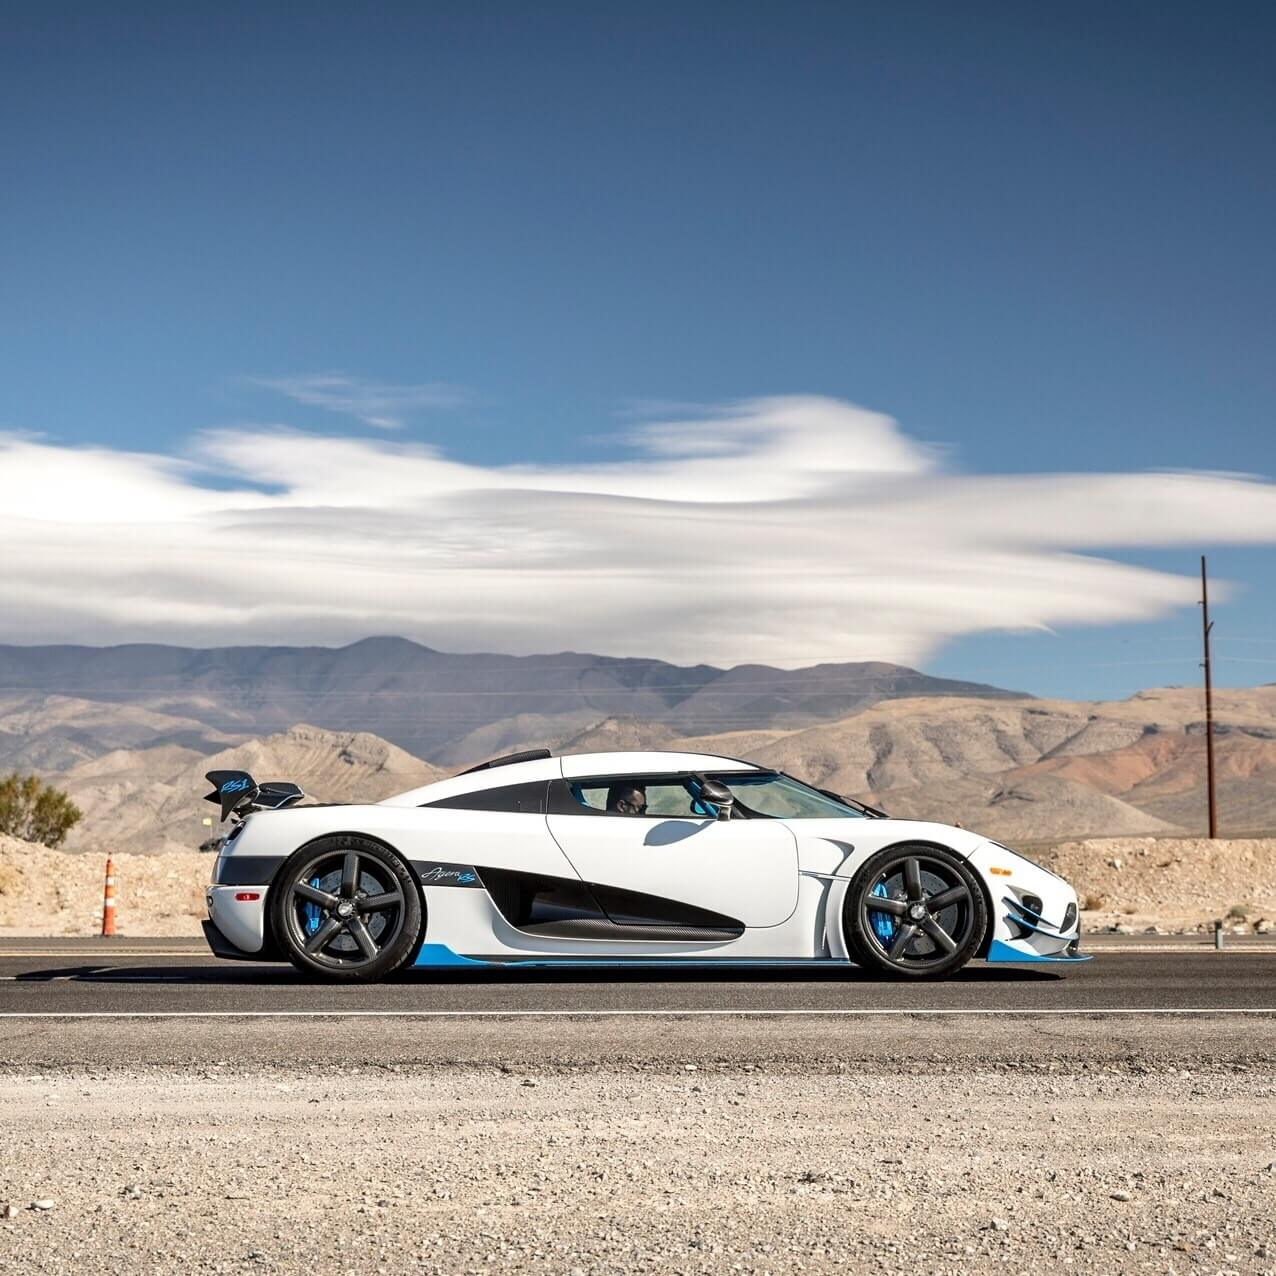 Koenigsegg Agera Rs 1: EXCLUSIVE: Koenigsegg Agera RS1 Owner Whitesse JR